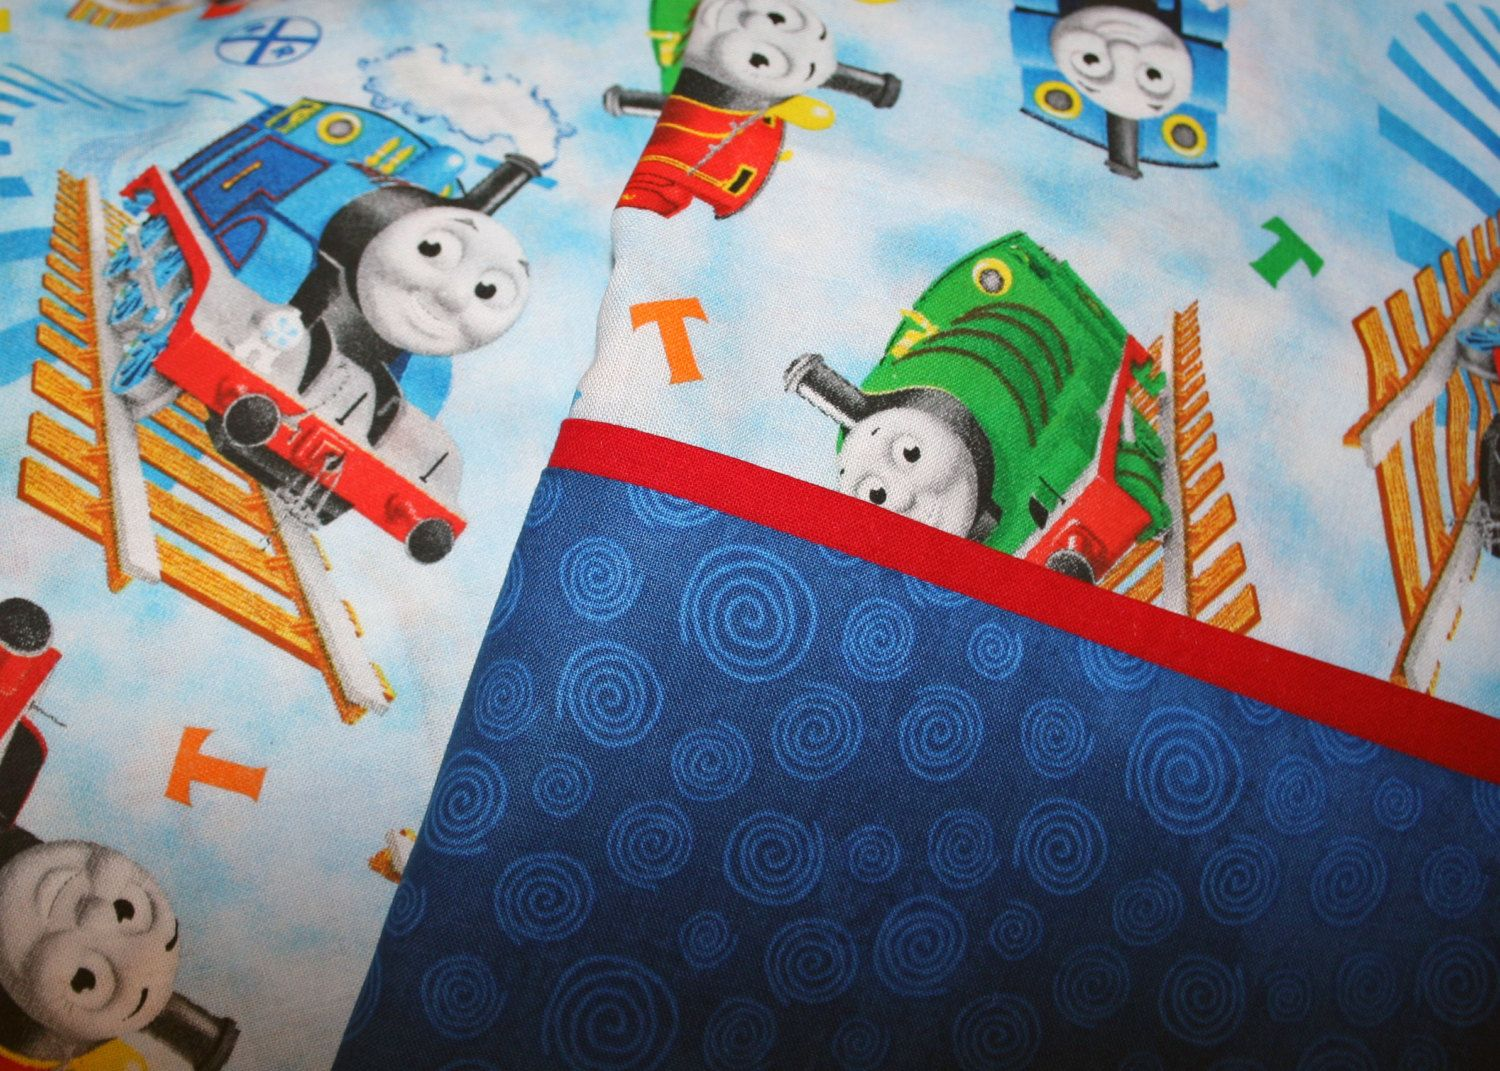 Thomas The Train Pillowcase Impressive Thomas The Train Pillowcasesewnmyway On Etsy  Stuff To Buy Review